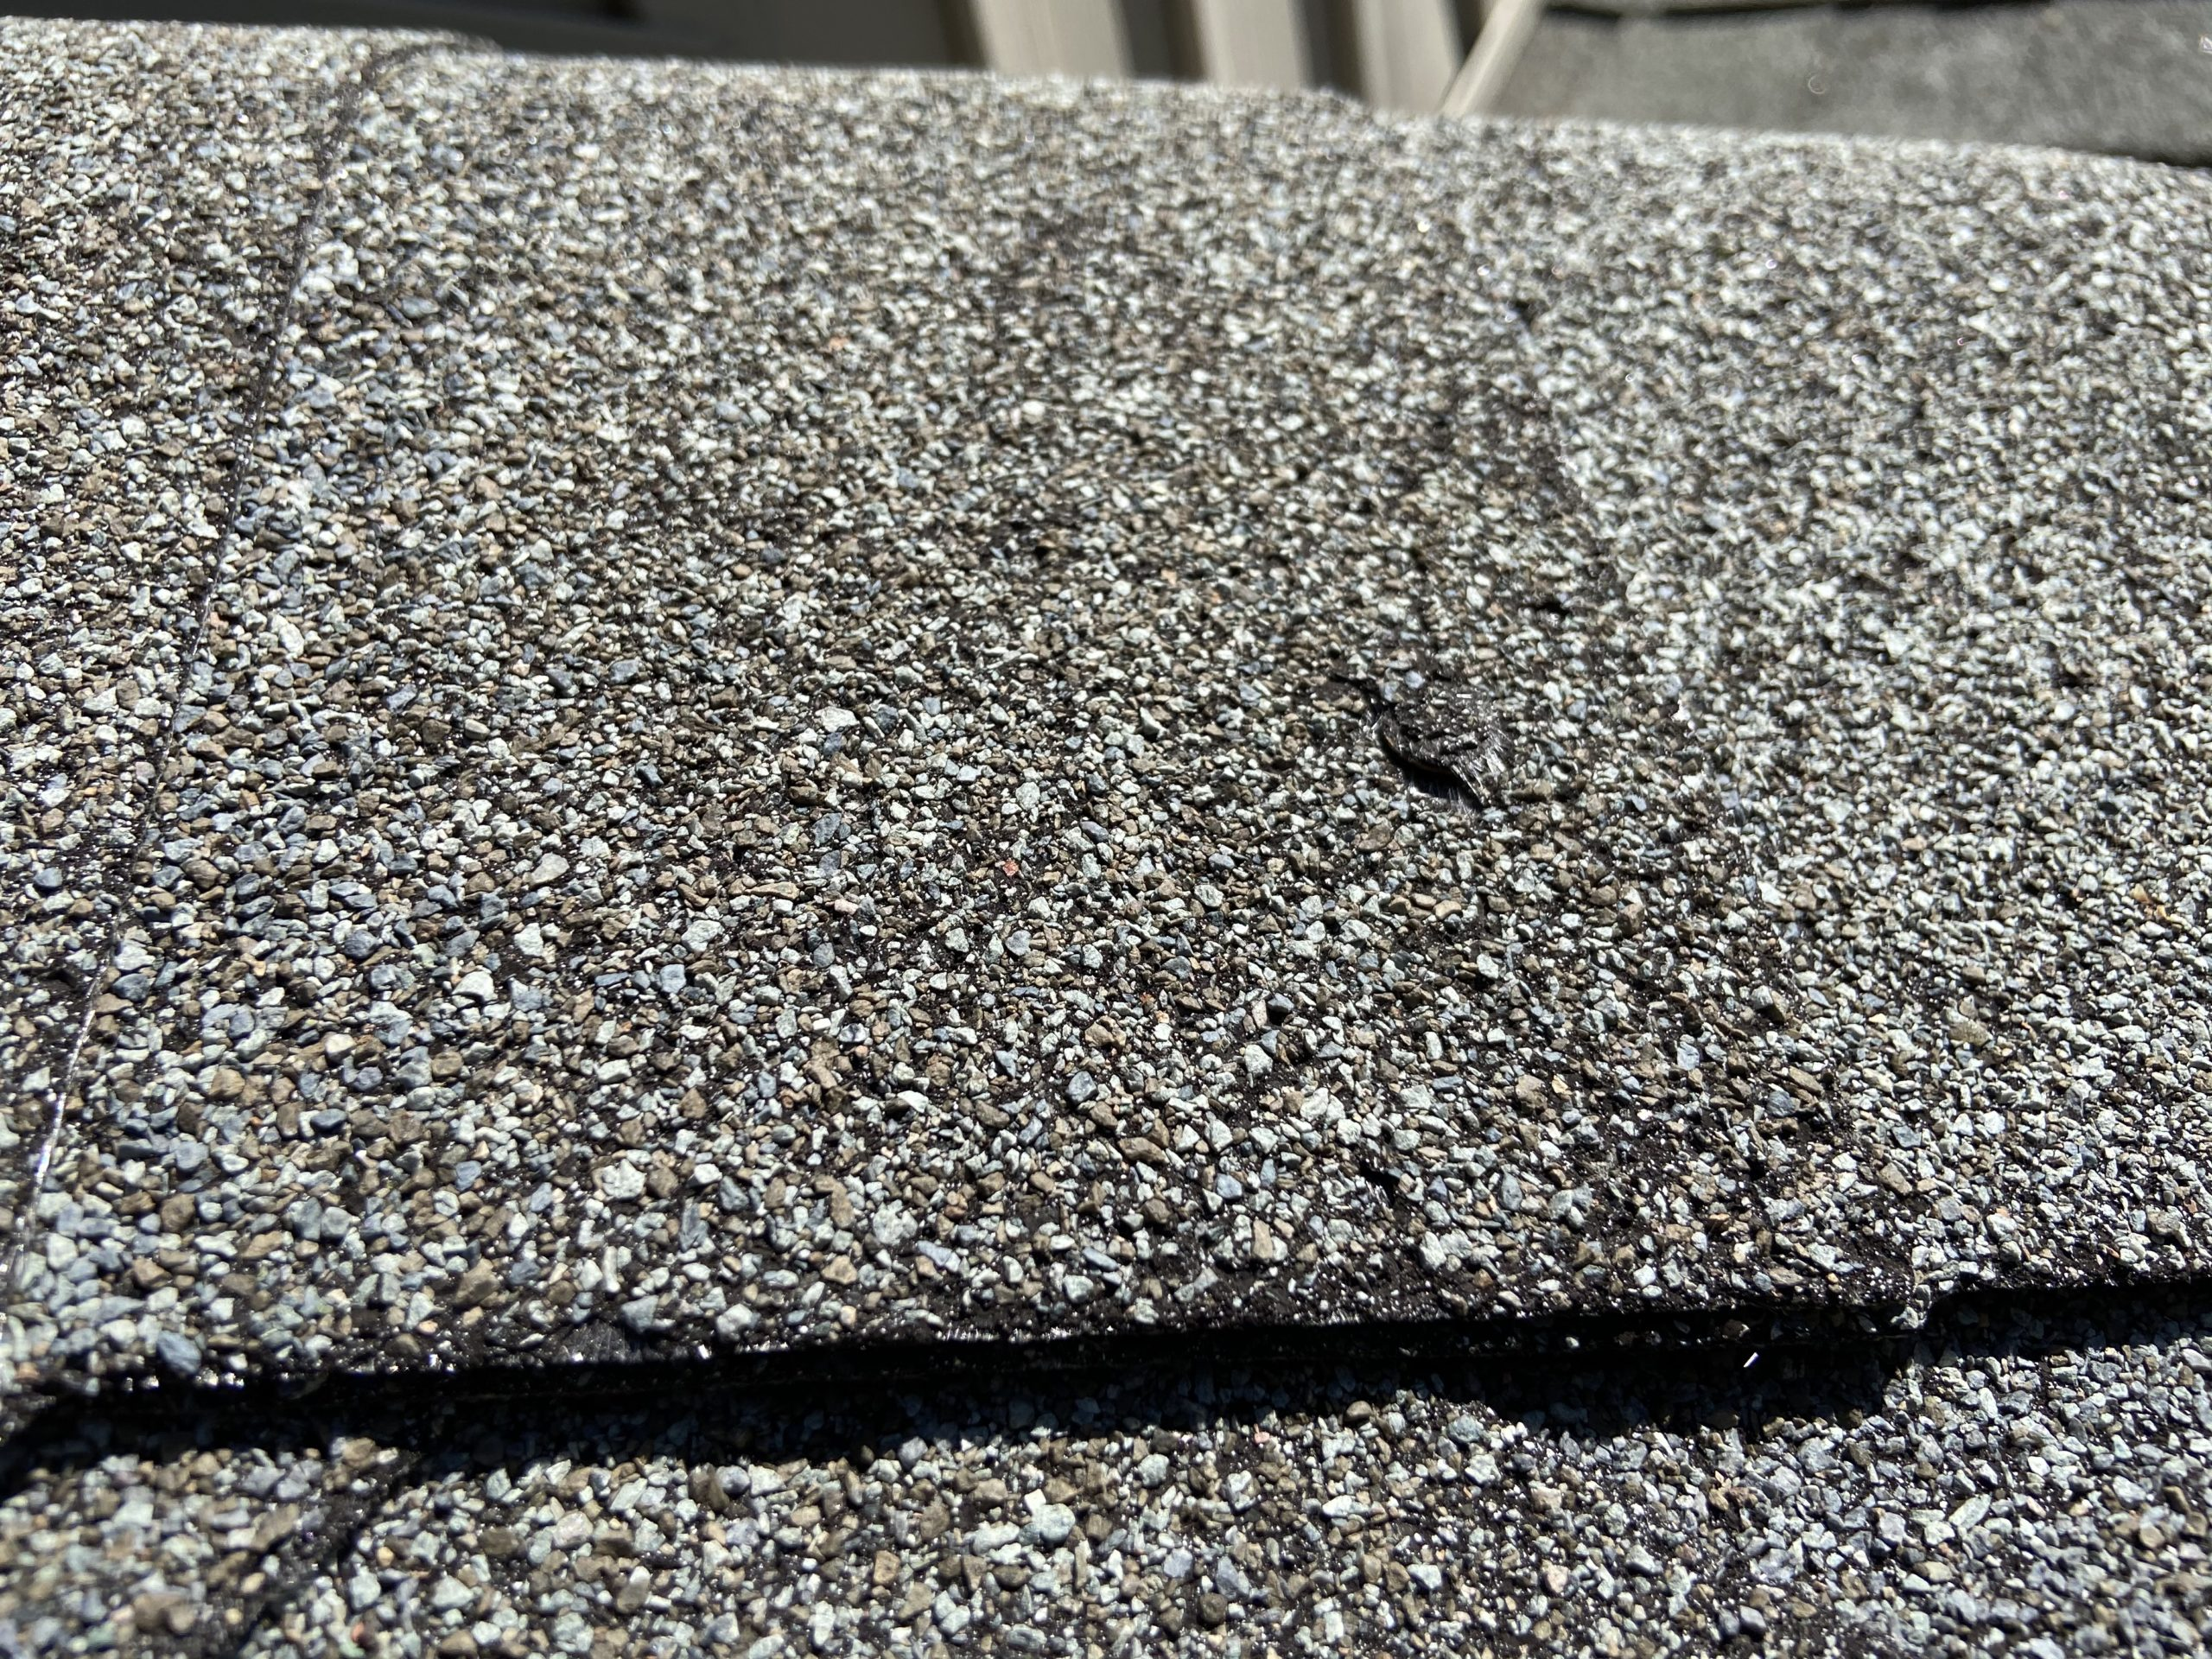 This is a close up view of a ridge cap shingle.